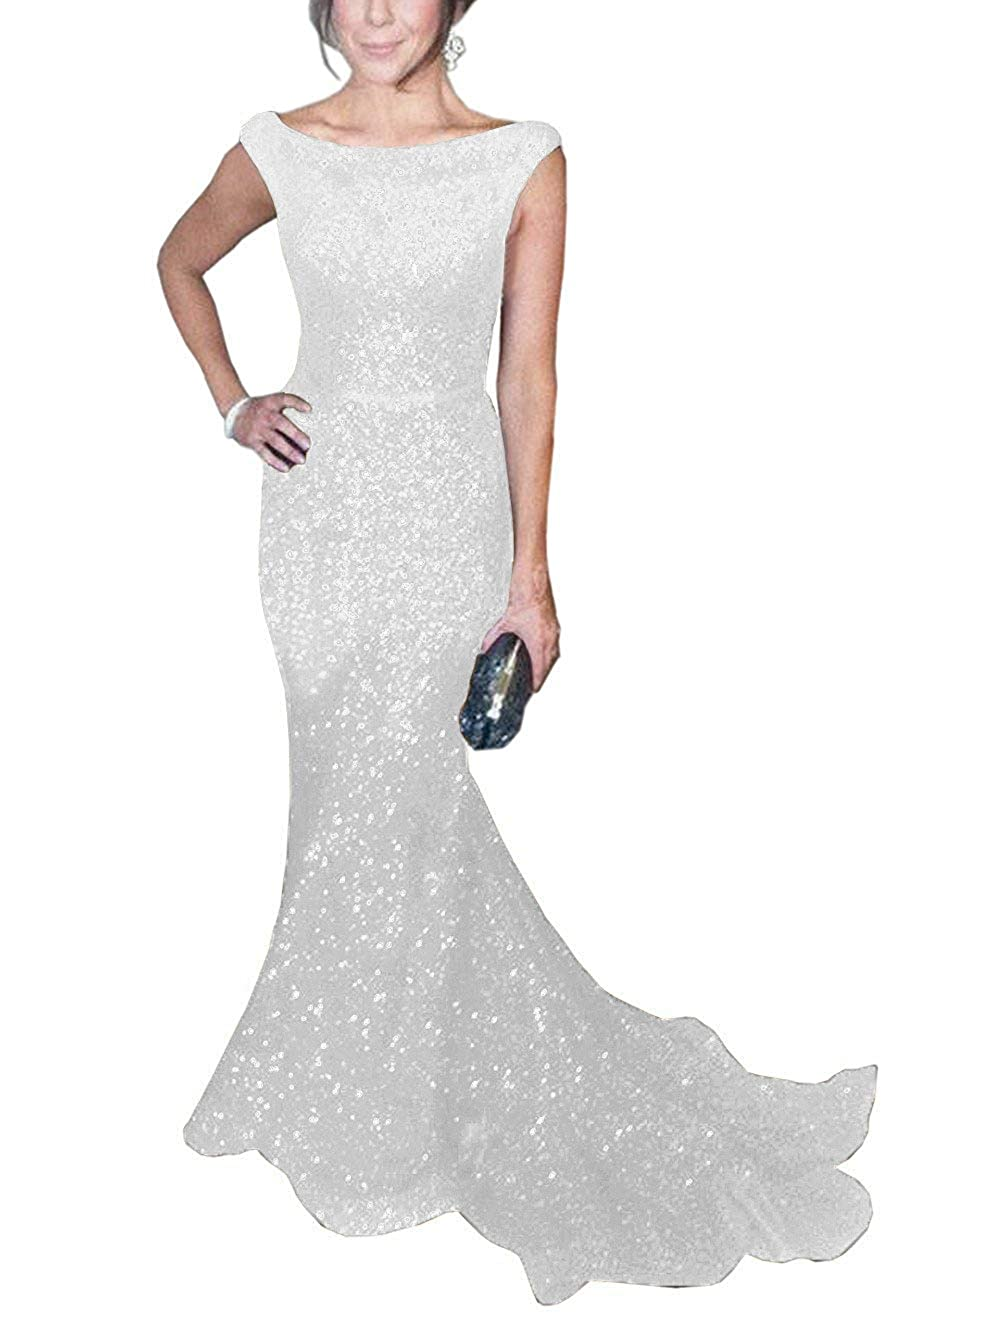 White ToonySume Women's Mermaid Sequined Prom Gown Formal Evening Dress for Wedding